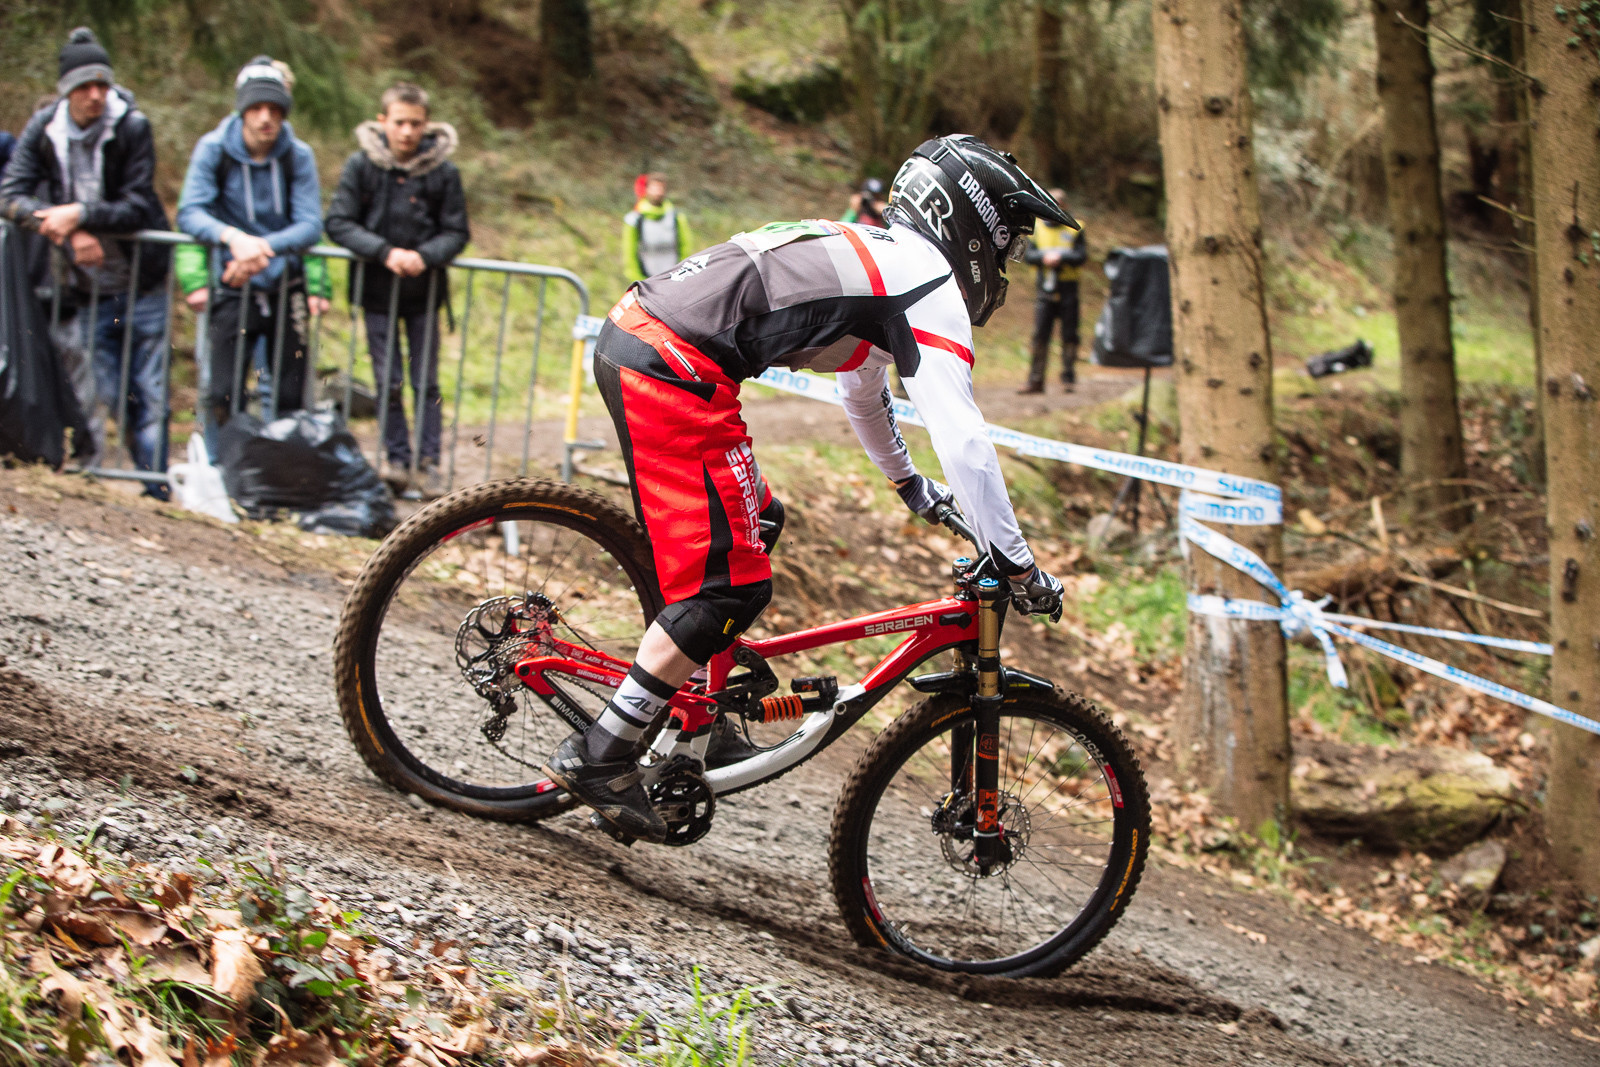 Saracen Myst Bottom Out at Lourdes World Cup - G-Out Project - Lourdes World Cup DH - Mountain Biking Pictures - Vital MTB